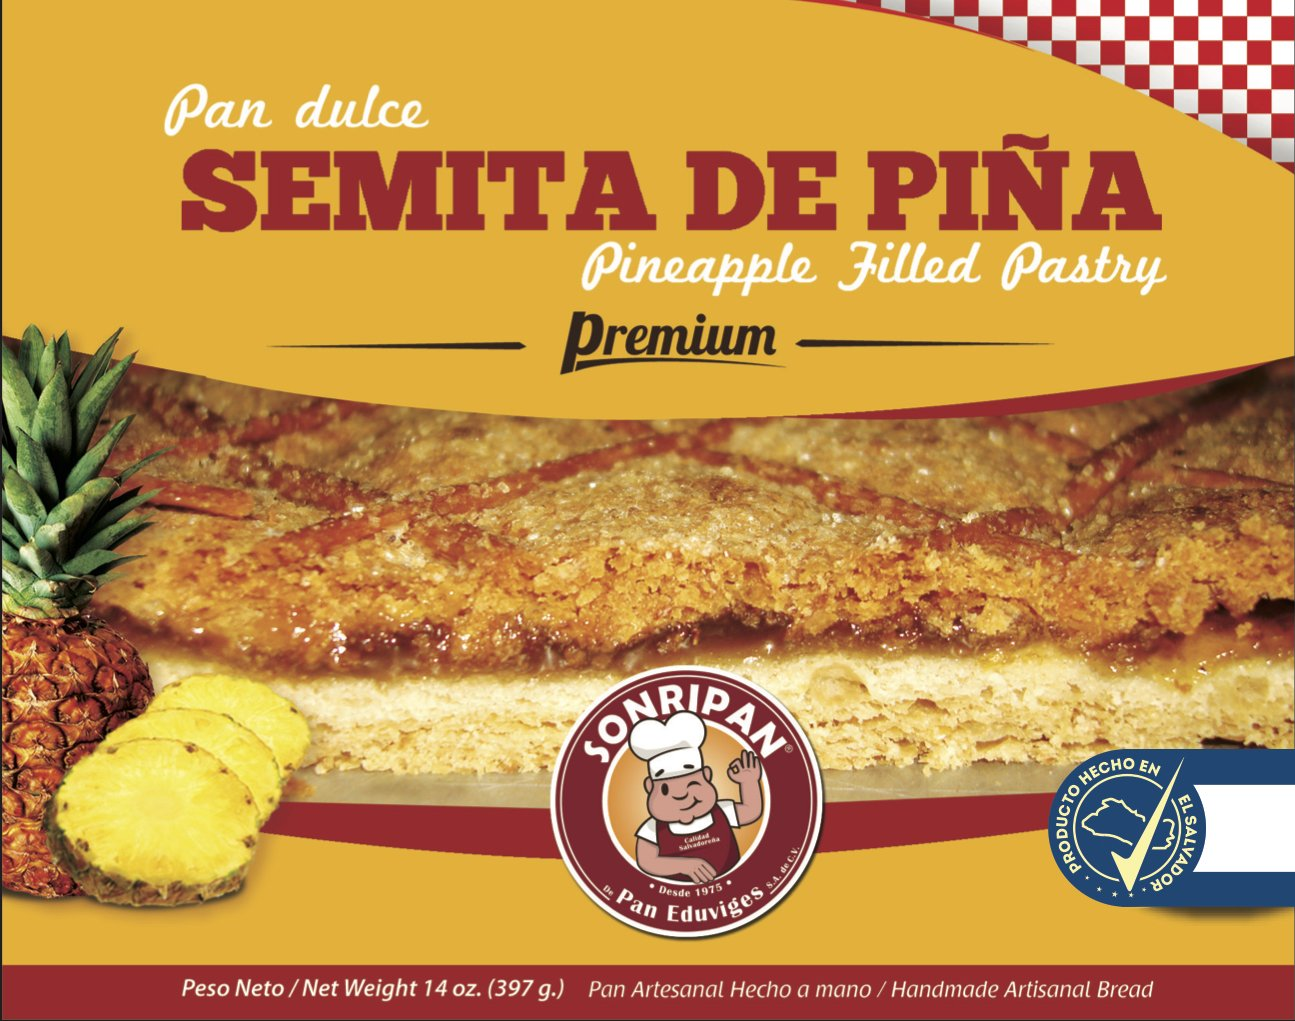 Pineapple Filled Pastry-Semita de Piña: Amazon.com: Grocery & Gourmet Food